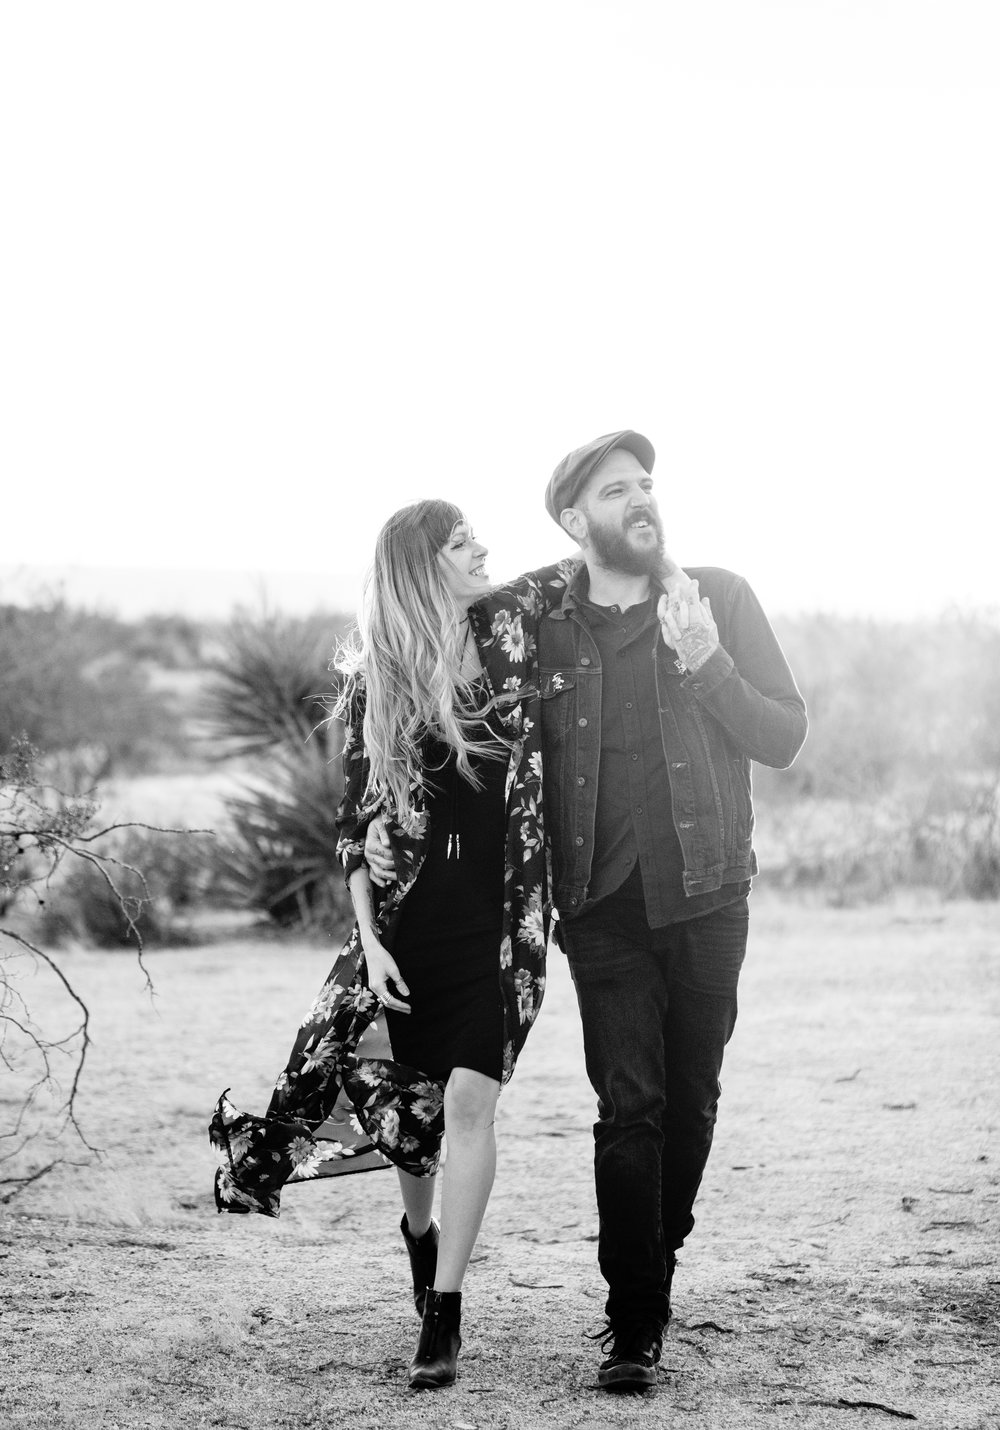 nicole-daacke-photography-joshua-tree-cactus-garden-engagement-photos-joshua-tree-national-park-enegagement-session-edgy-hipster-california-cholla-garden-golden-sunset-session-60.jpg